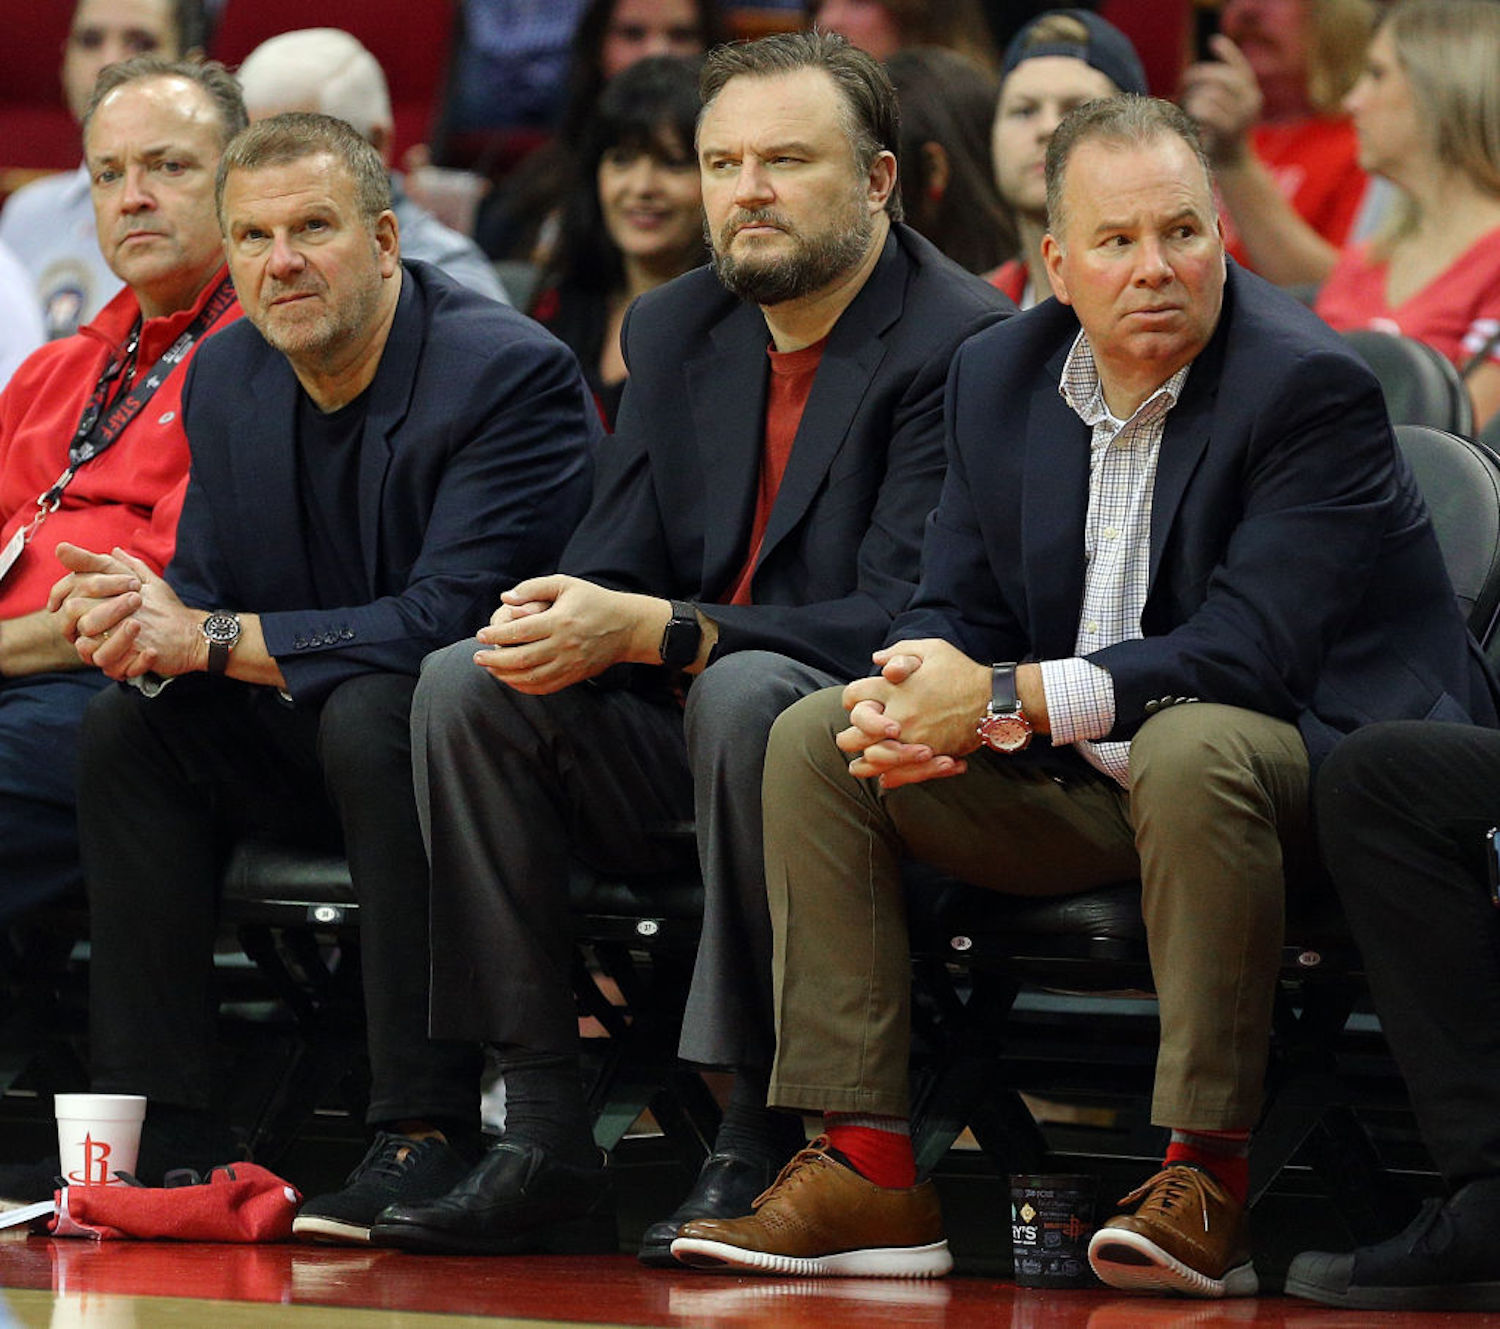 The 76ers finally upgraded their head coach by switching out Brett Brown for Doc Rivers, and they just made another splash by hiring Daryl Morey.